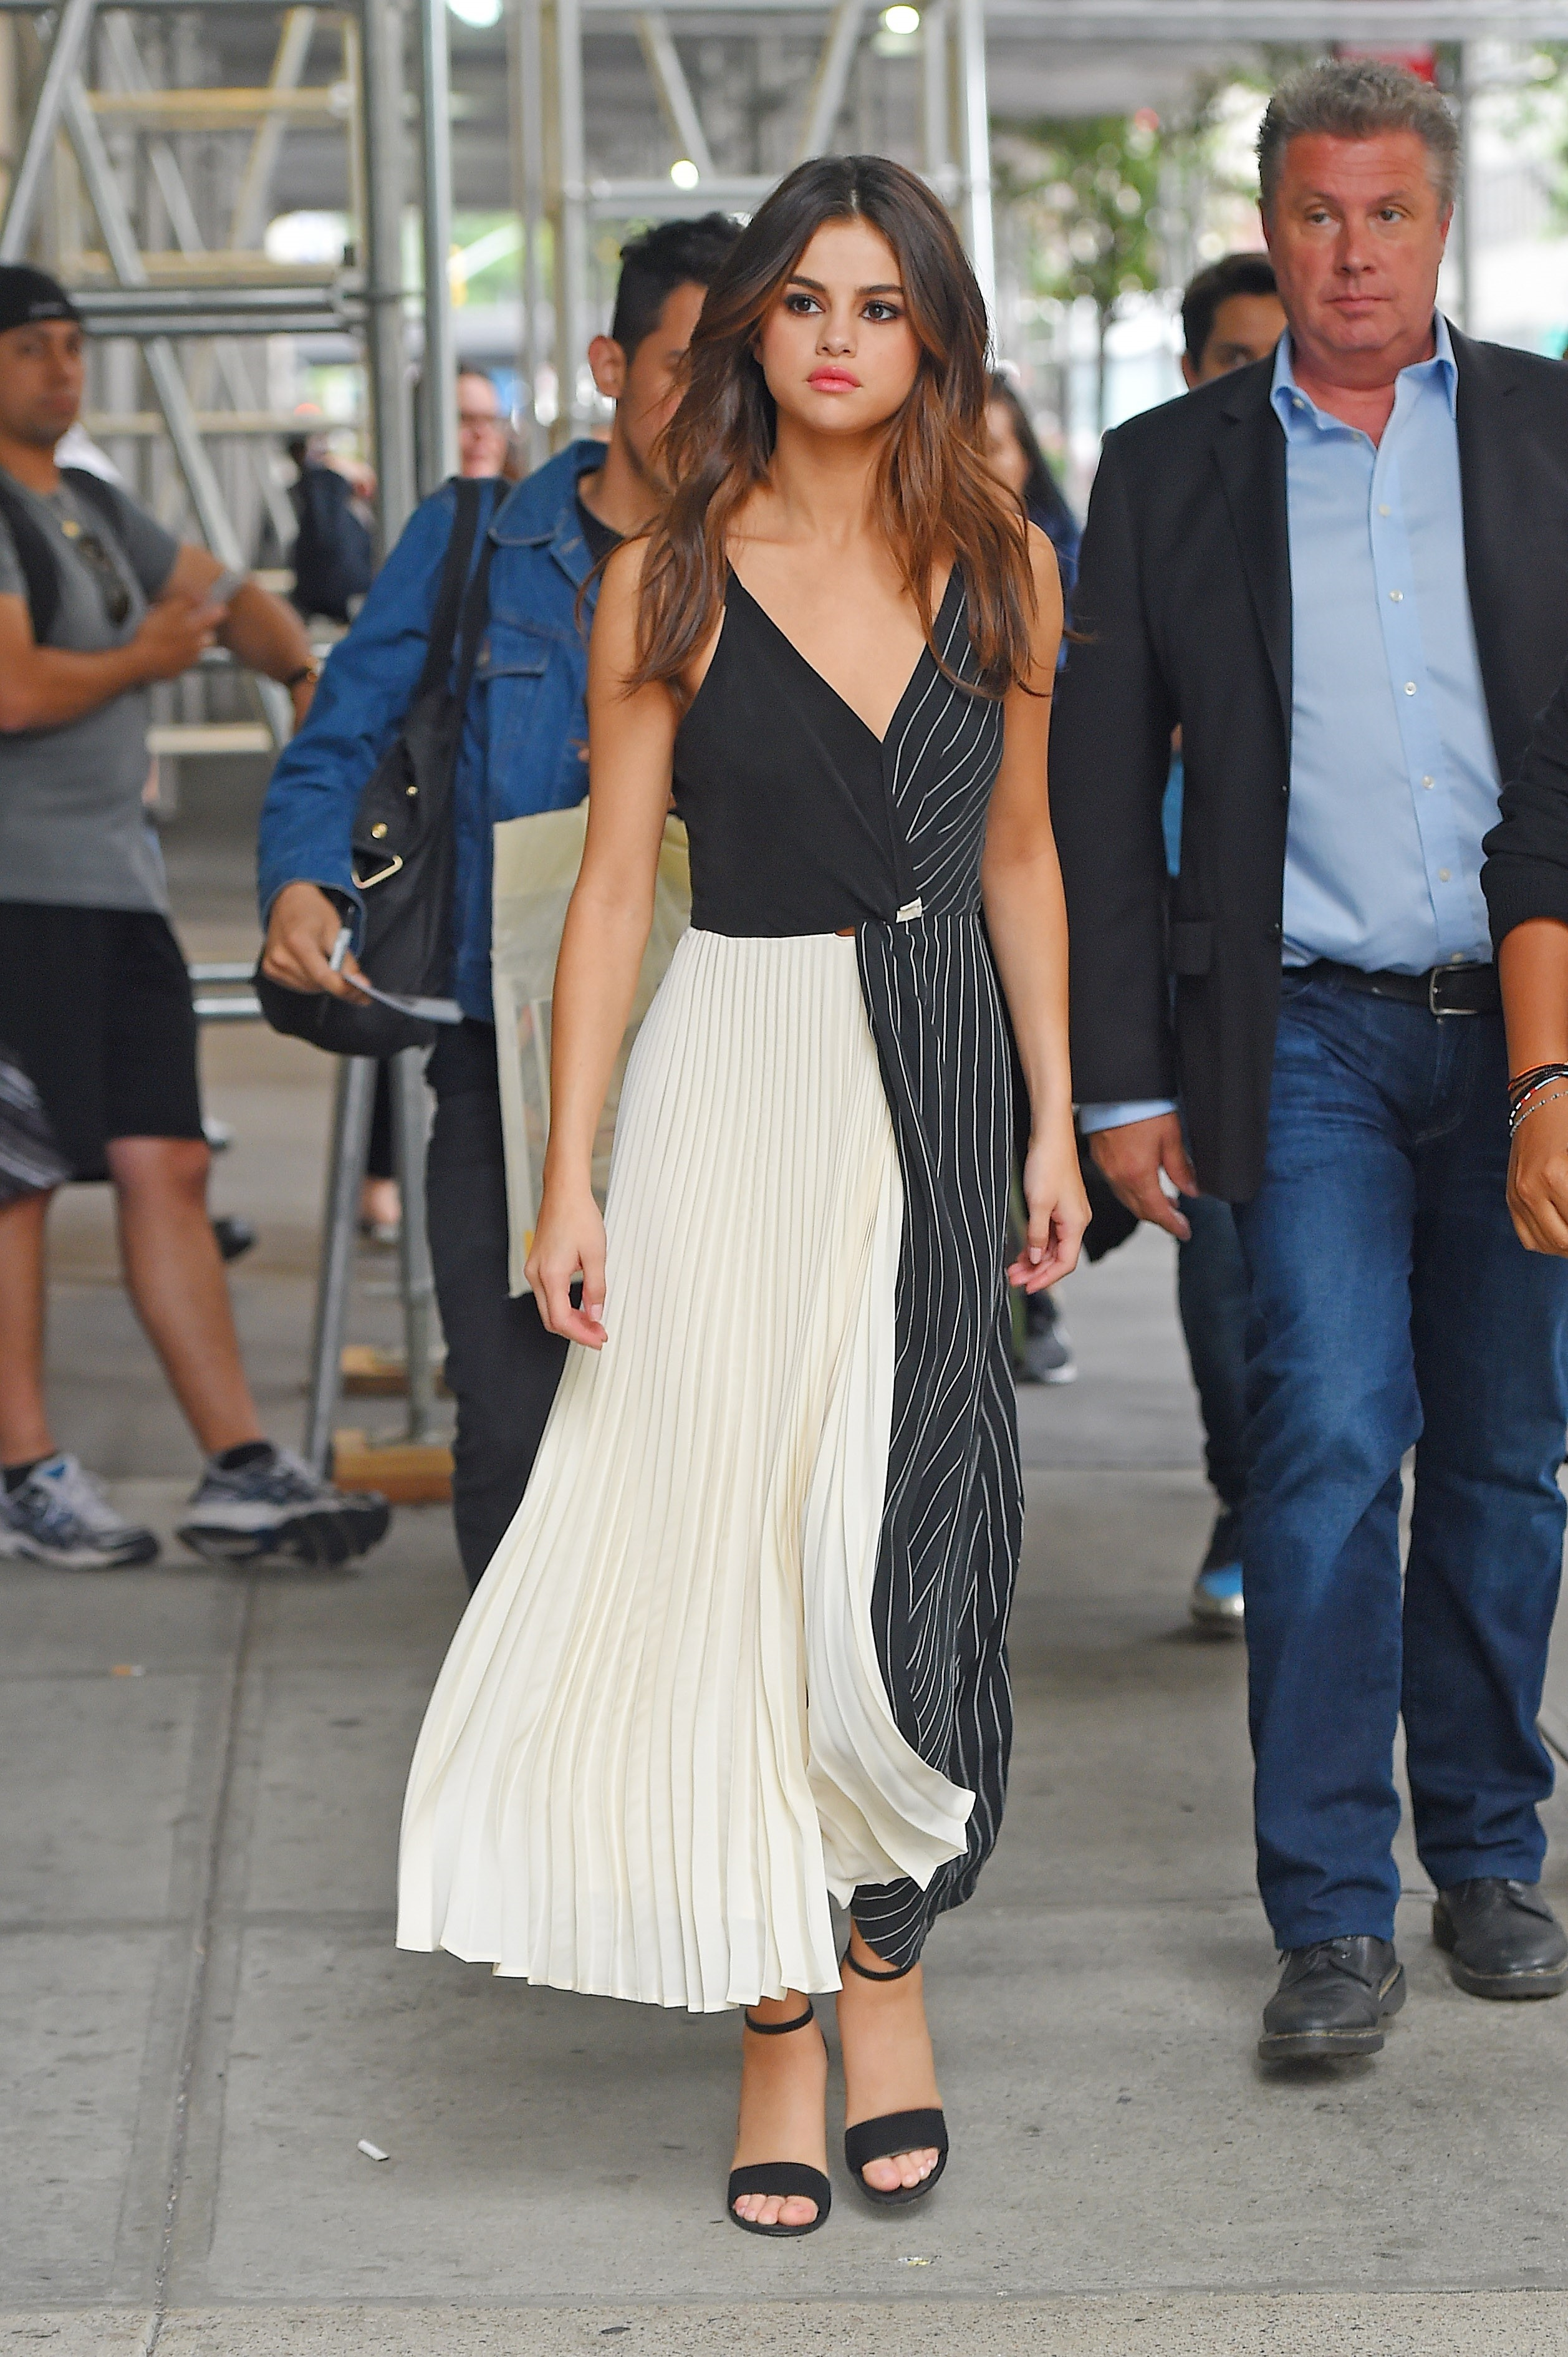 New York, NY  - Selena Gomez steps out in Manhattan sporting her fourth look of the day. The brunette is wearing a pleated color block jumpsuit paired with heels.  Pictured: Selena Gomez  BACKGRID USA 5 JUNE 2017, Image: 335190633, License: Rights-managed, Restrictions: , Model Release: no, Credit line: Profimedia, AKM-GSI